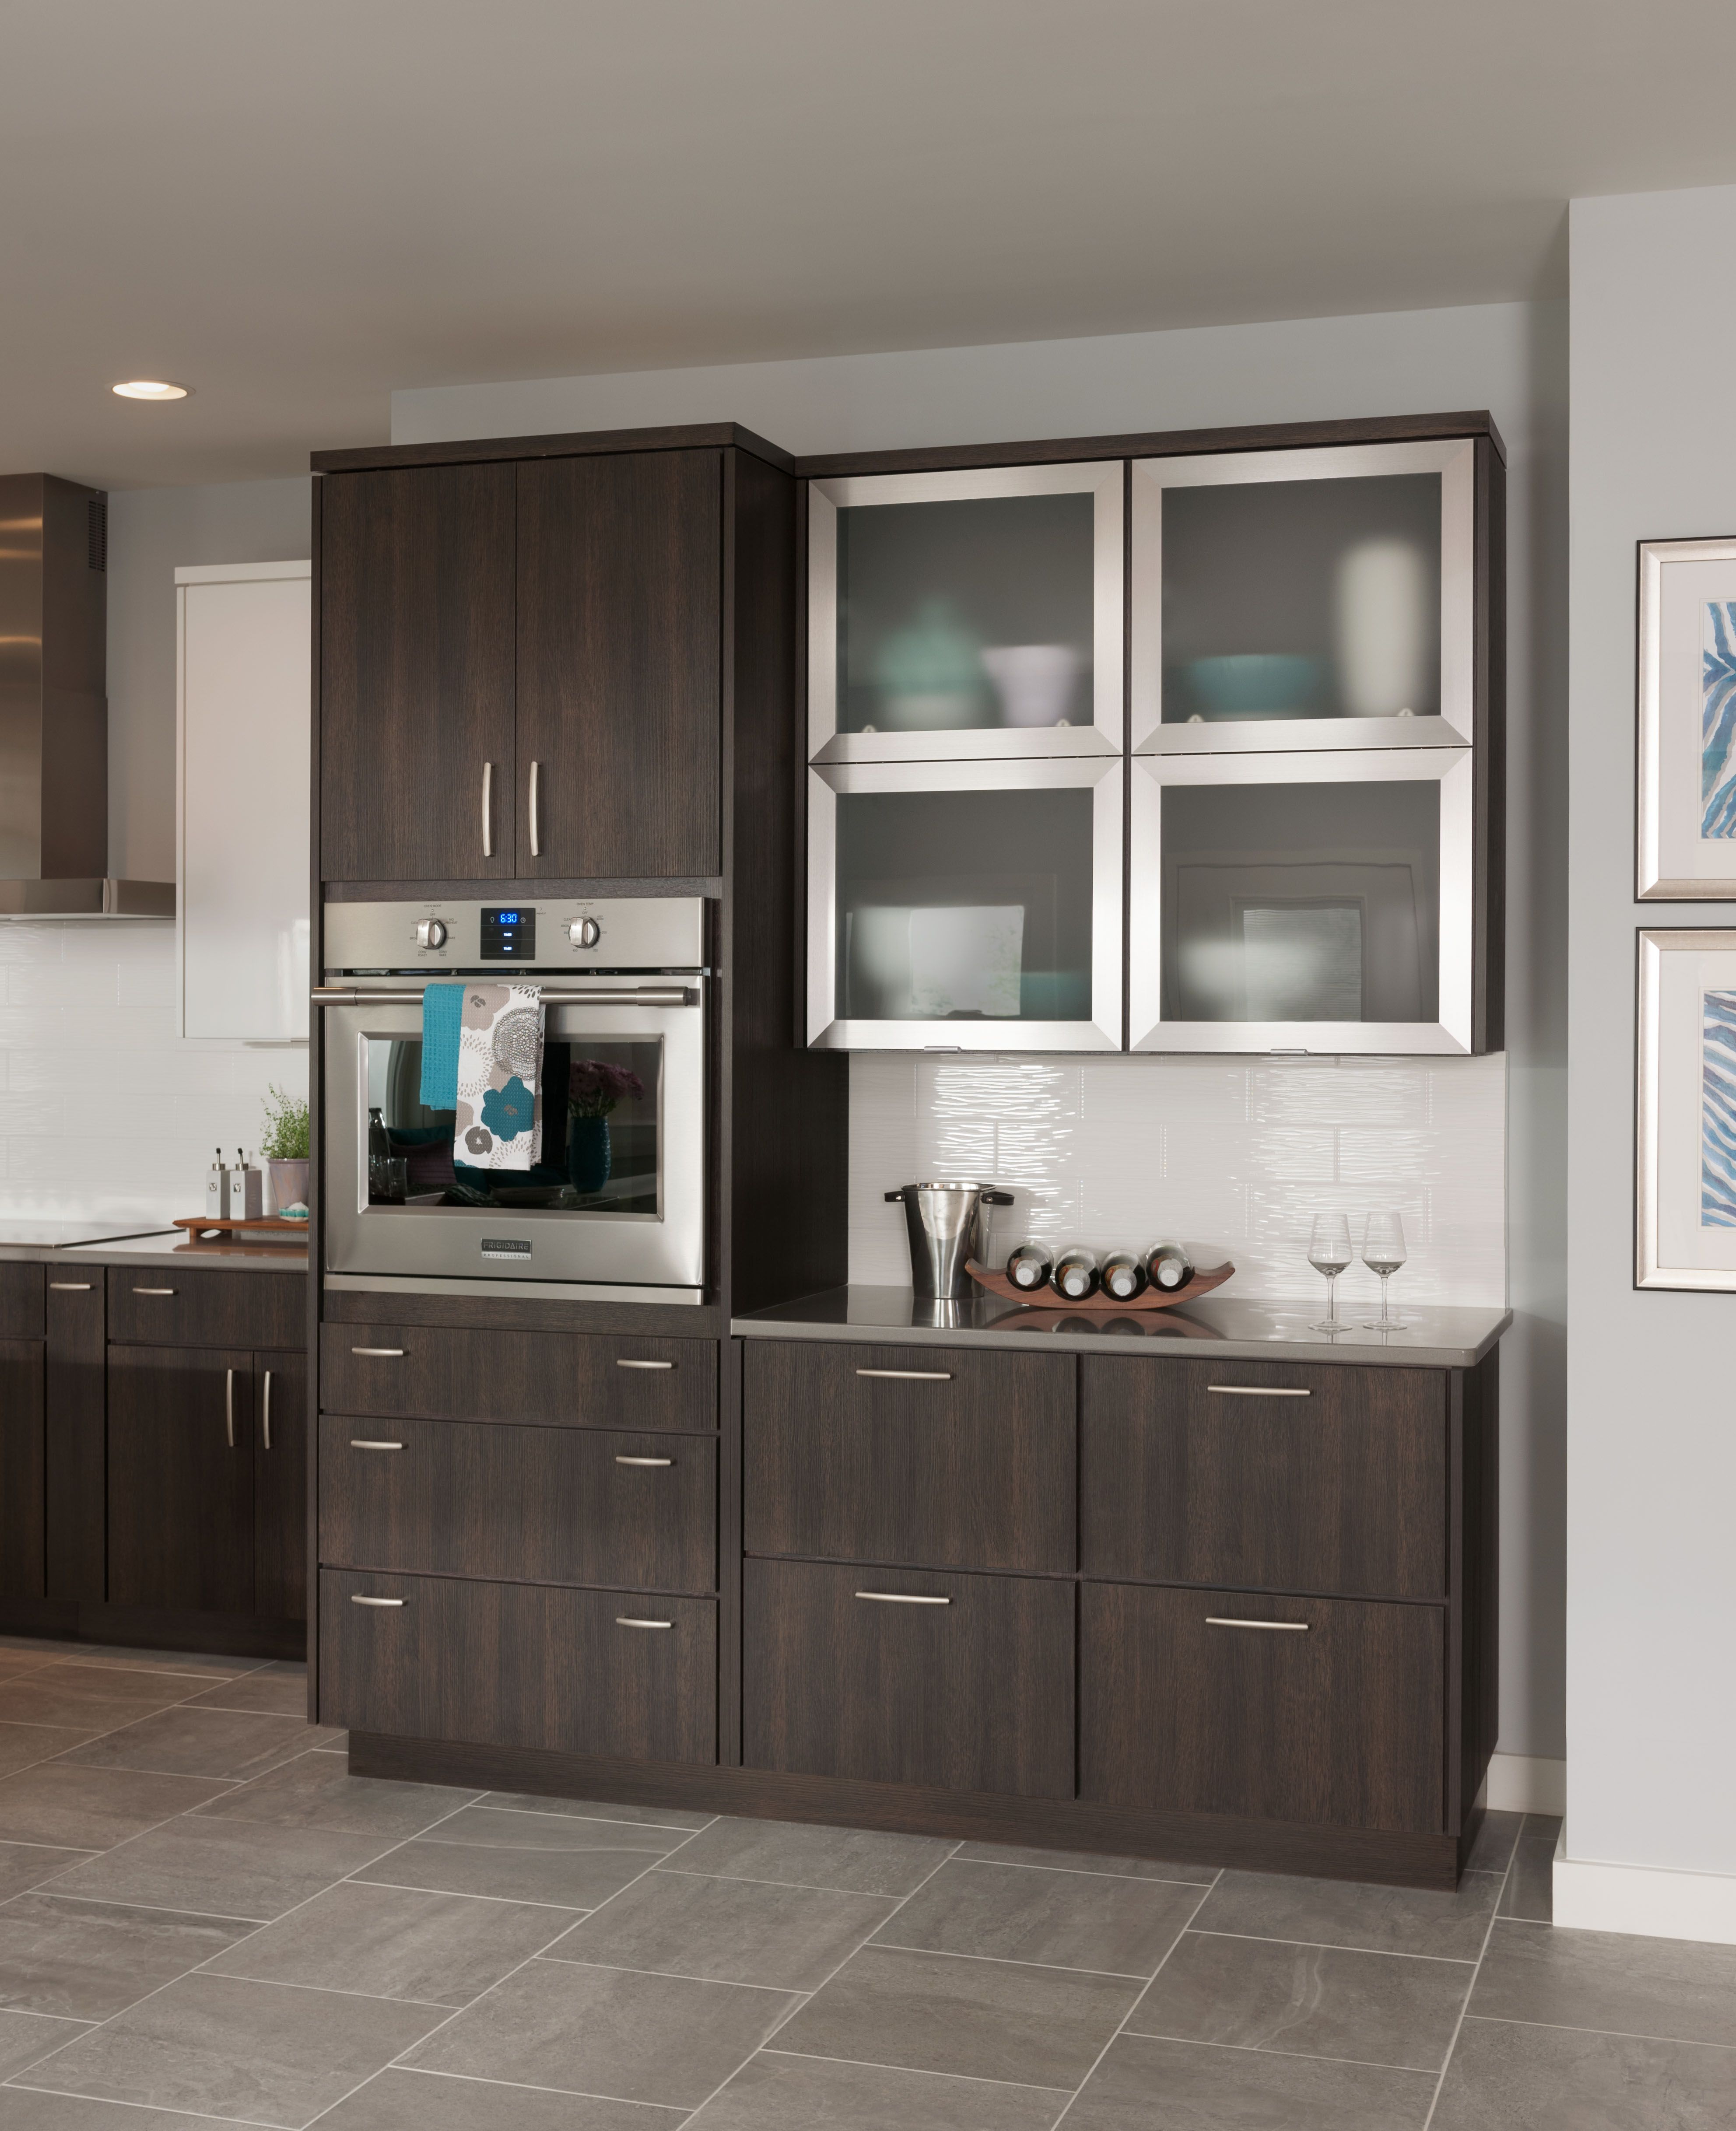 Bellagio stainless steel doors with frosted glass. The bi